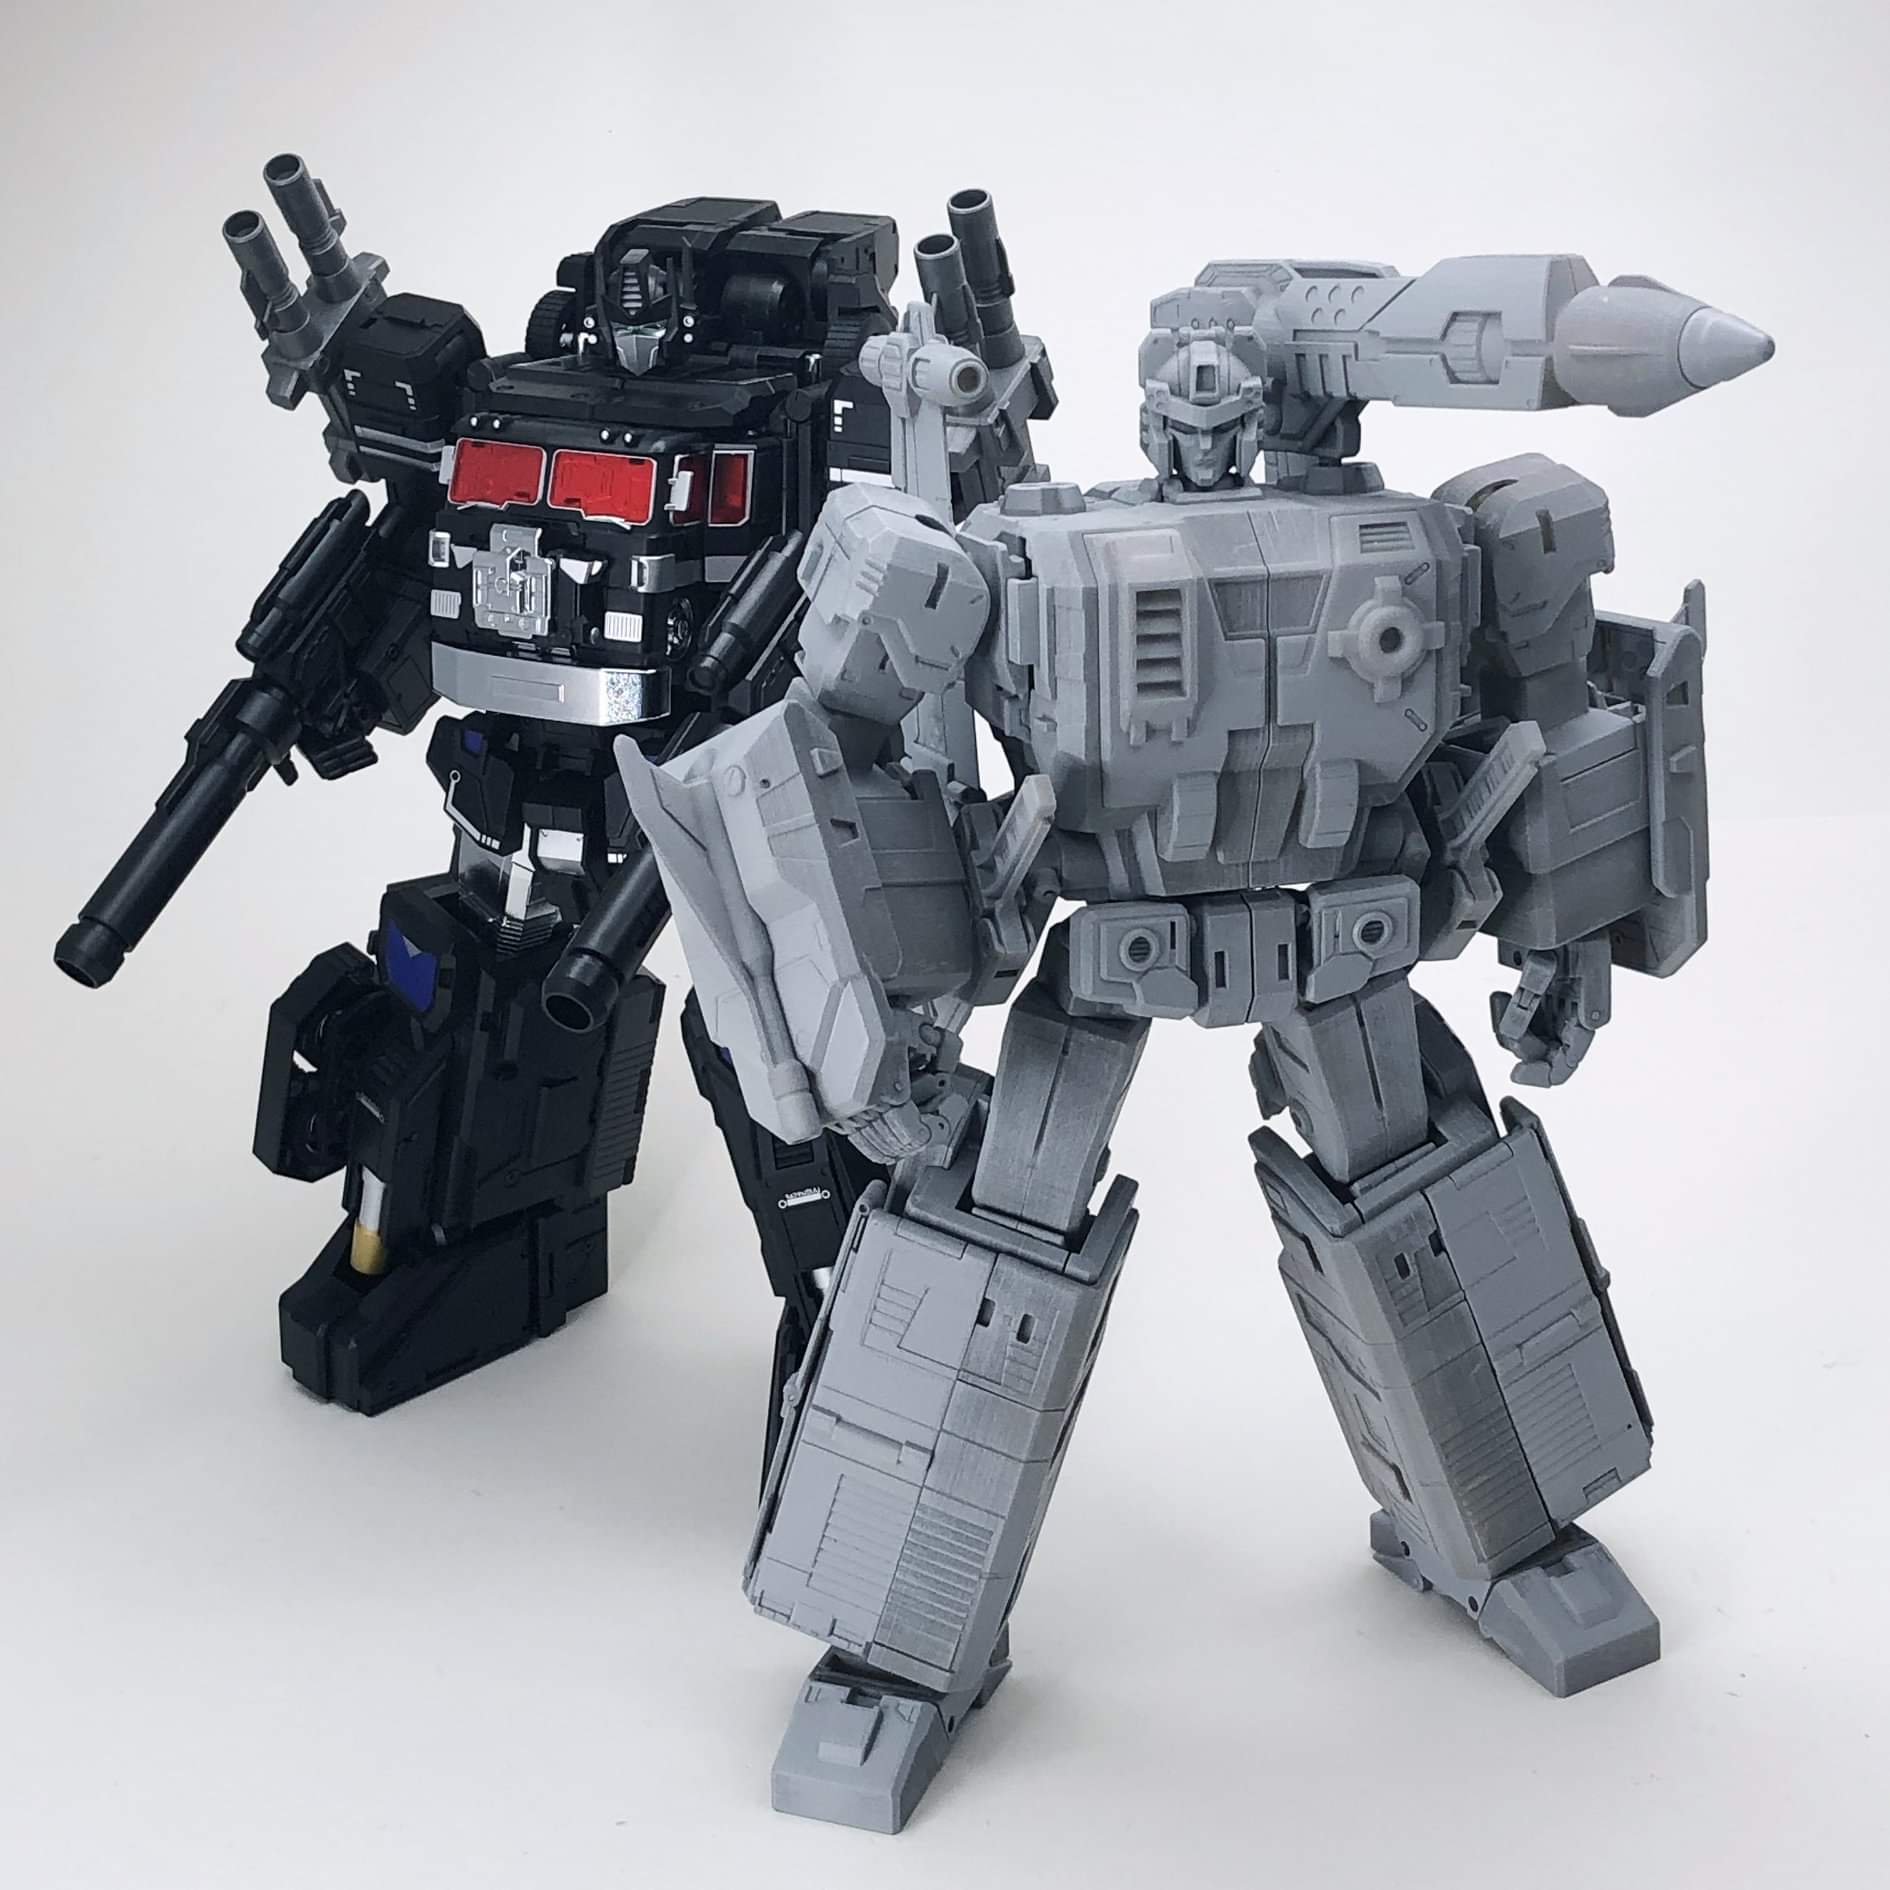 [FansHobby] Produit Tiers - MB-06 Power Baser (aka Powermaster Optimus) + MB-11 God Armour (aka Godbomber) - TF Masterforce - Page 3 HvzsDcO1_o